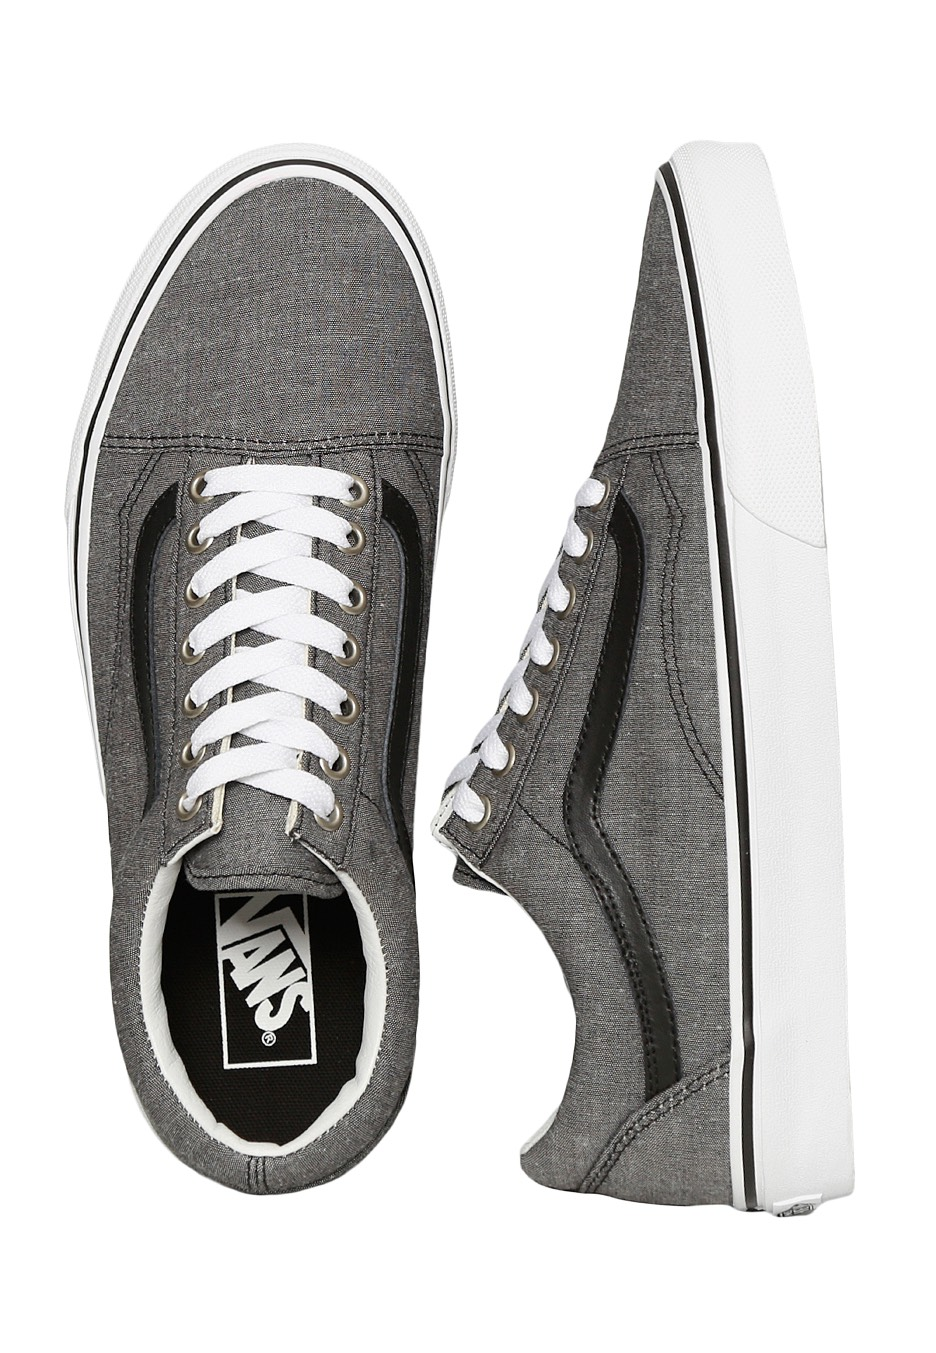 0fcdcd71f1 Vans - Old Skool C L Chambray Black - Shoes - Impericon.com UK